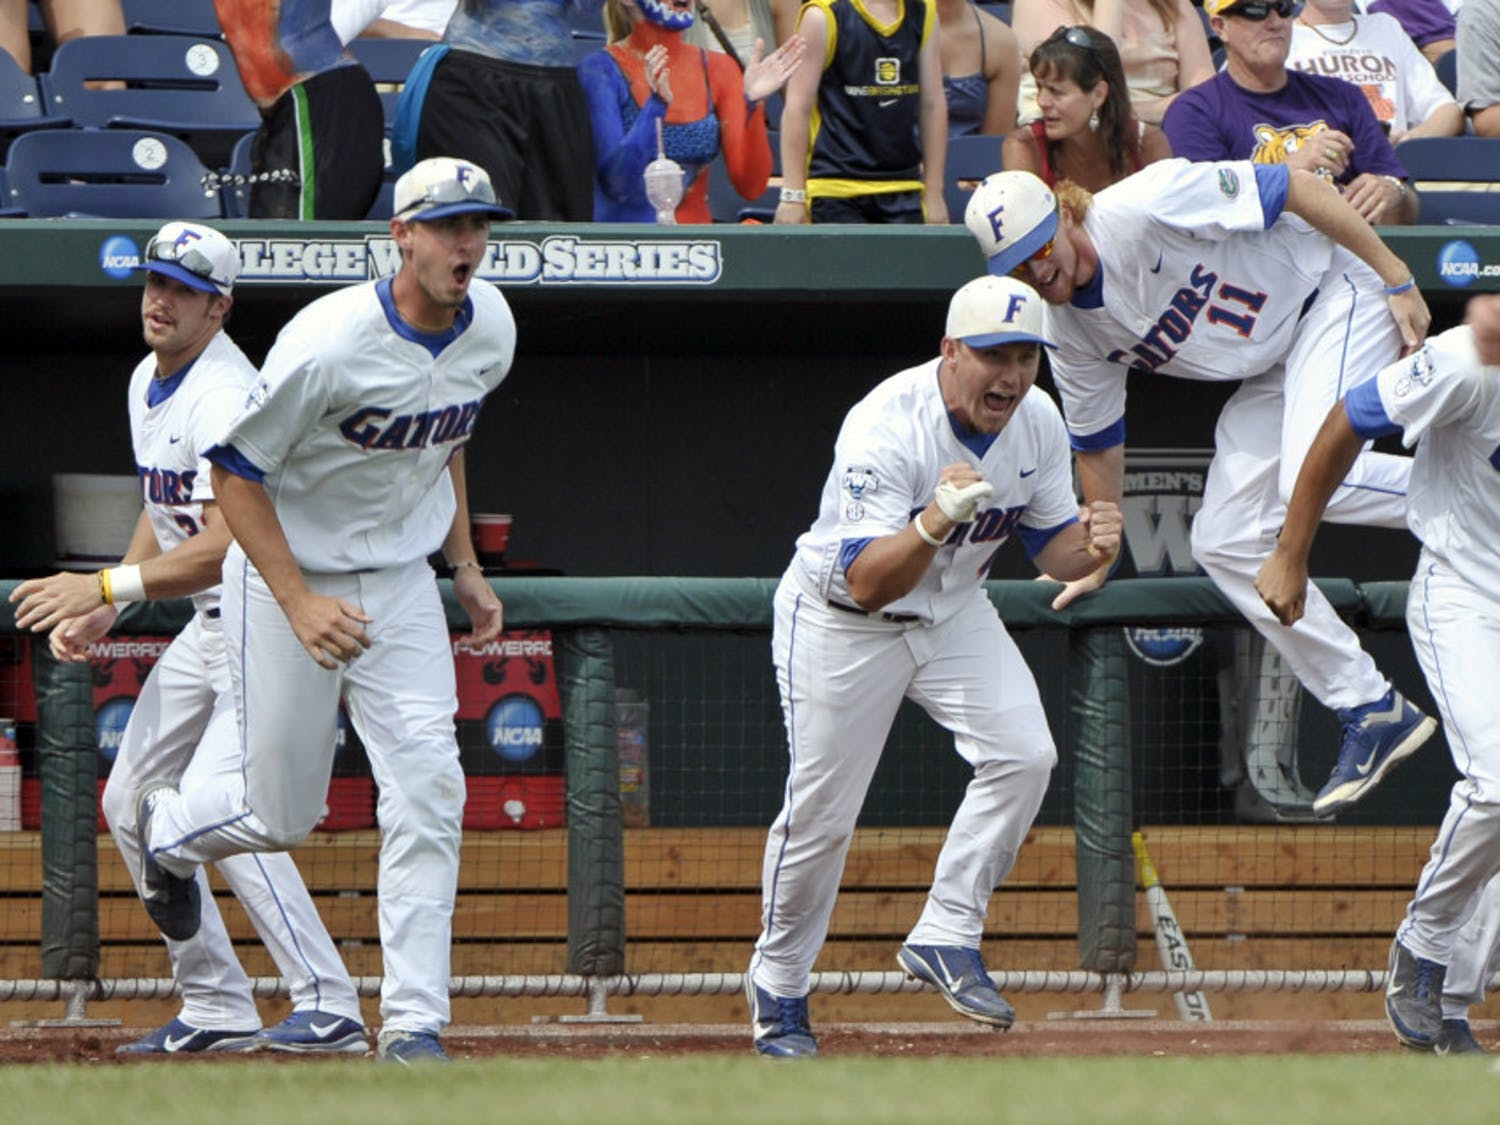 Florida players erupt out of the dugout after defeating Vanderbilt 6-4 to advance to the CWS championship series.